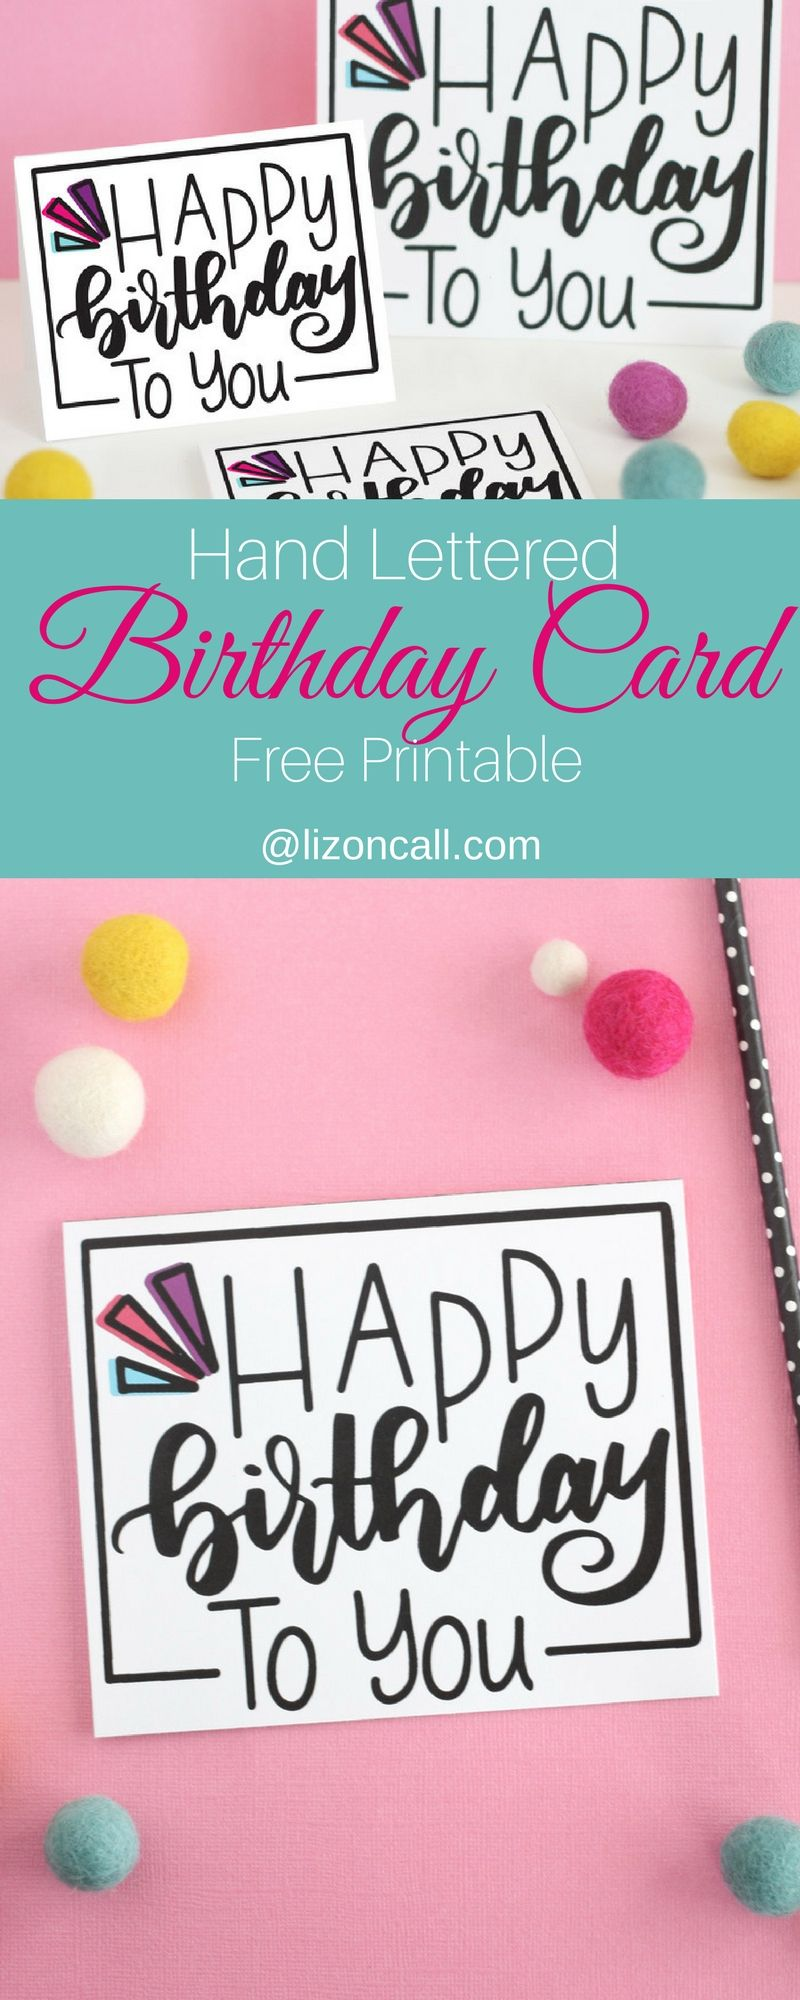 Download Hand Lettered Free Printable Birthday Card | Birthday ...